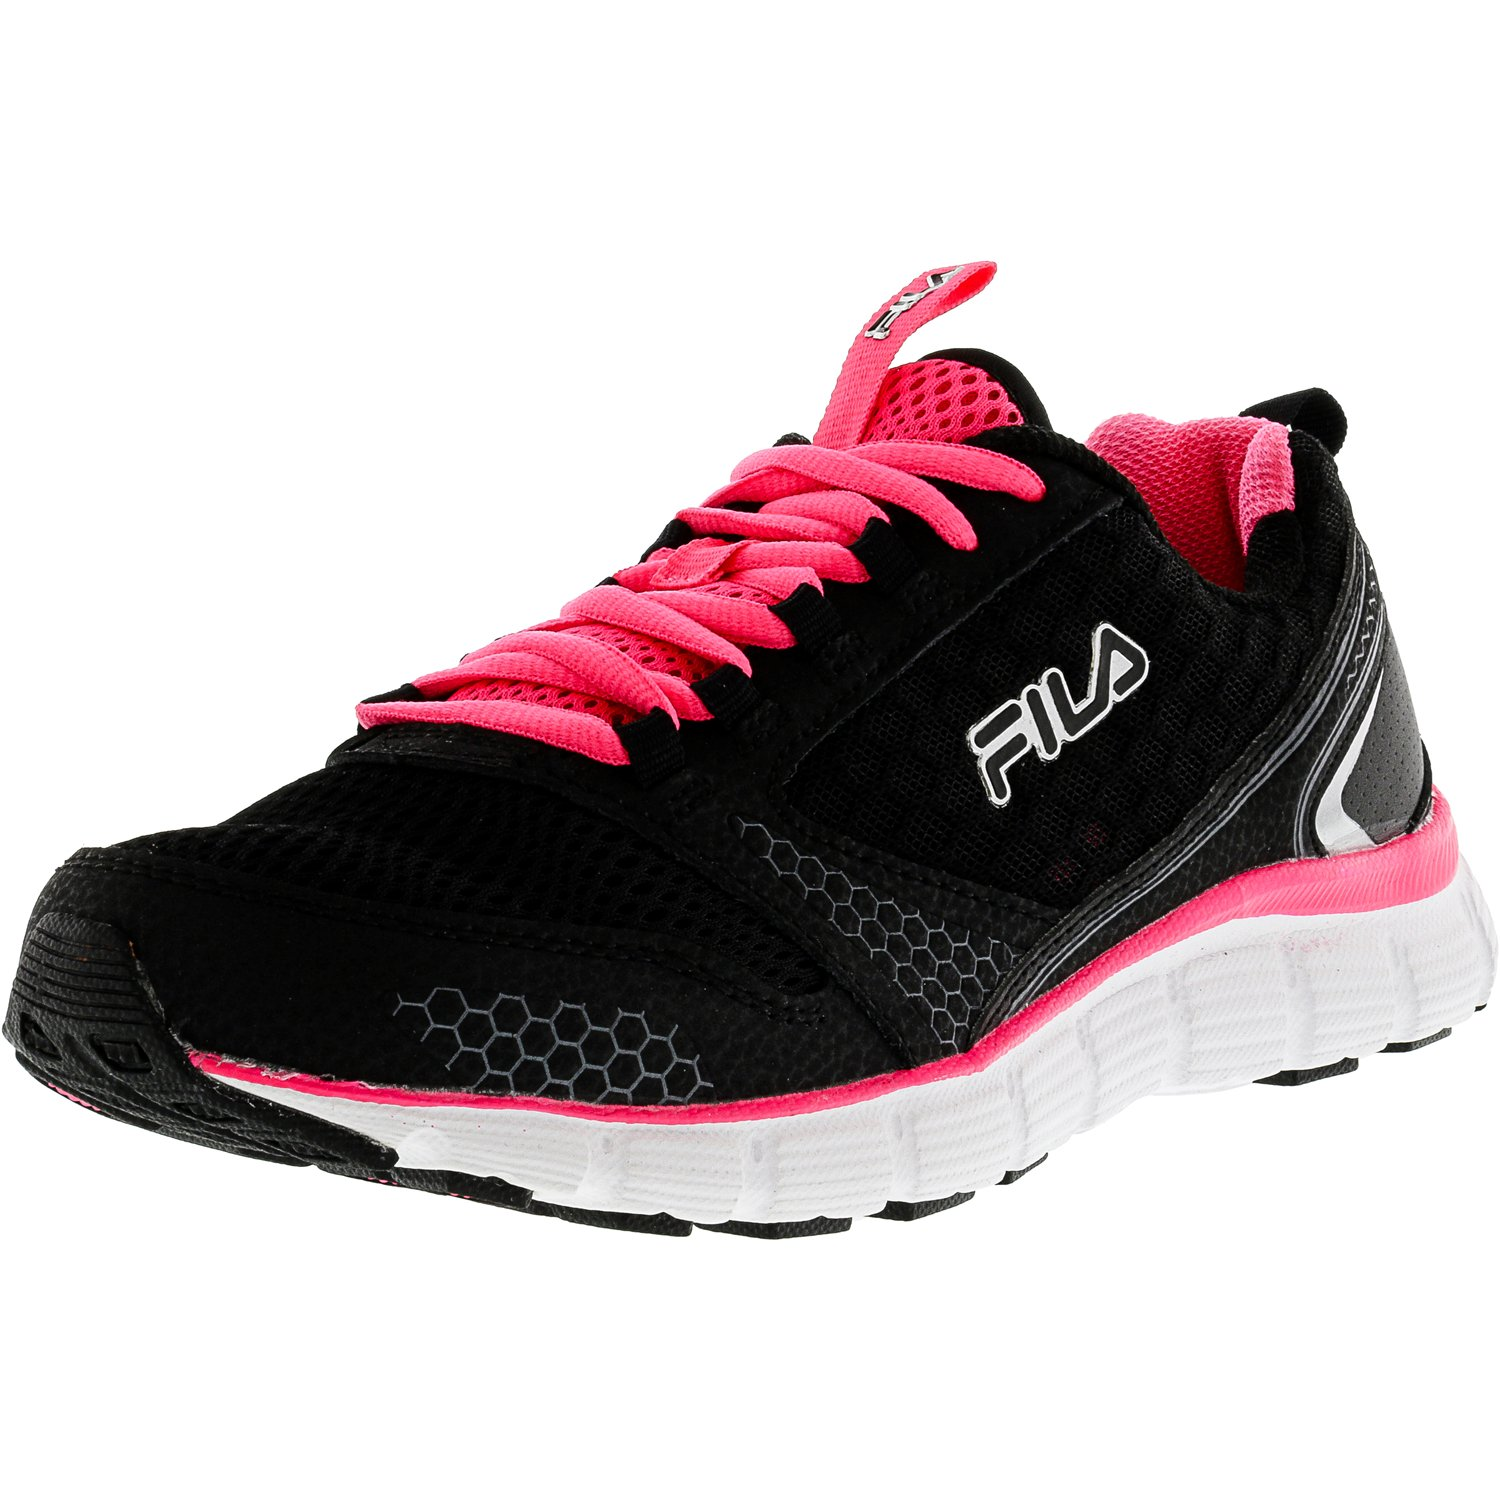 Knockout Pink Ankle-High Running Shoe